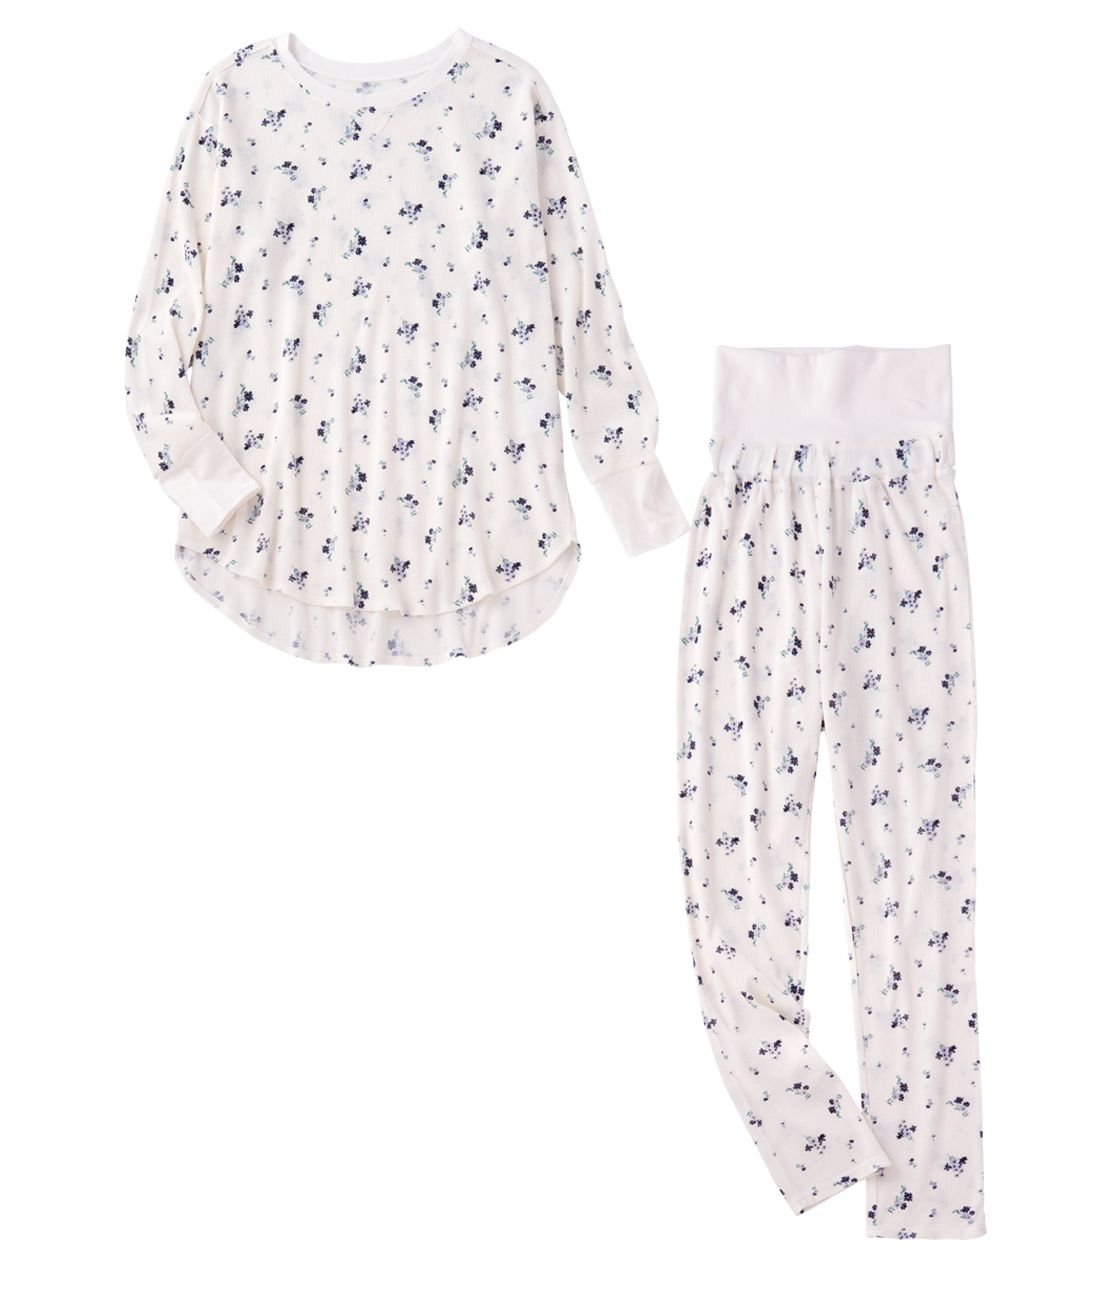 Thermal HARA Maki pajamas